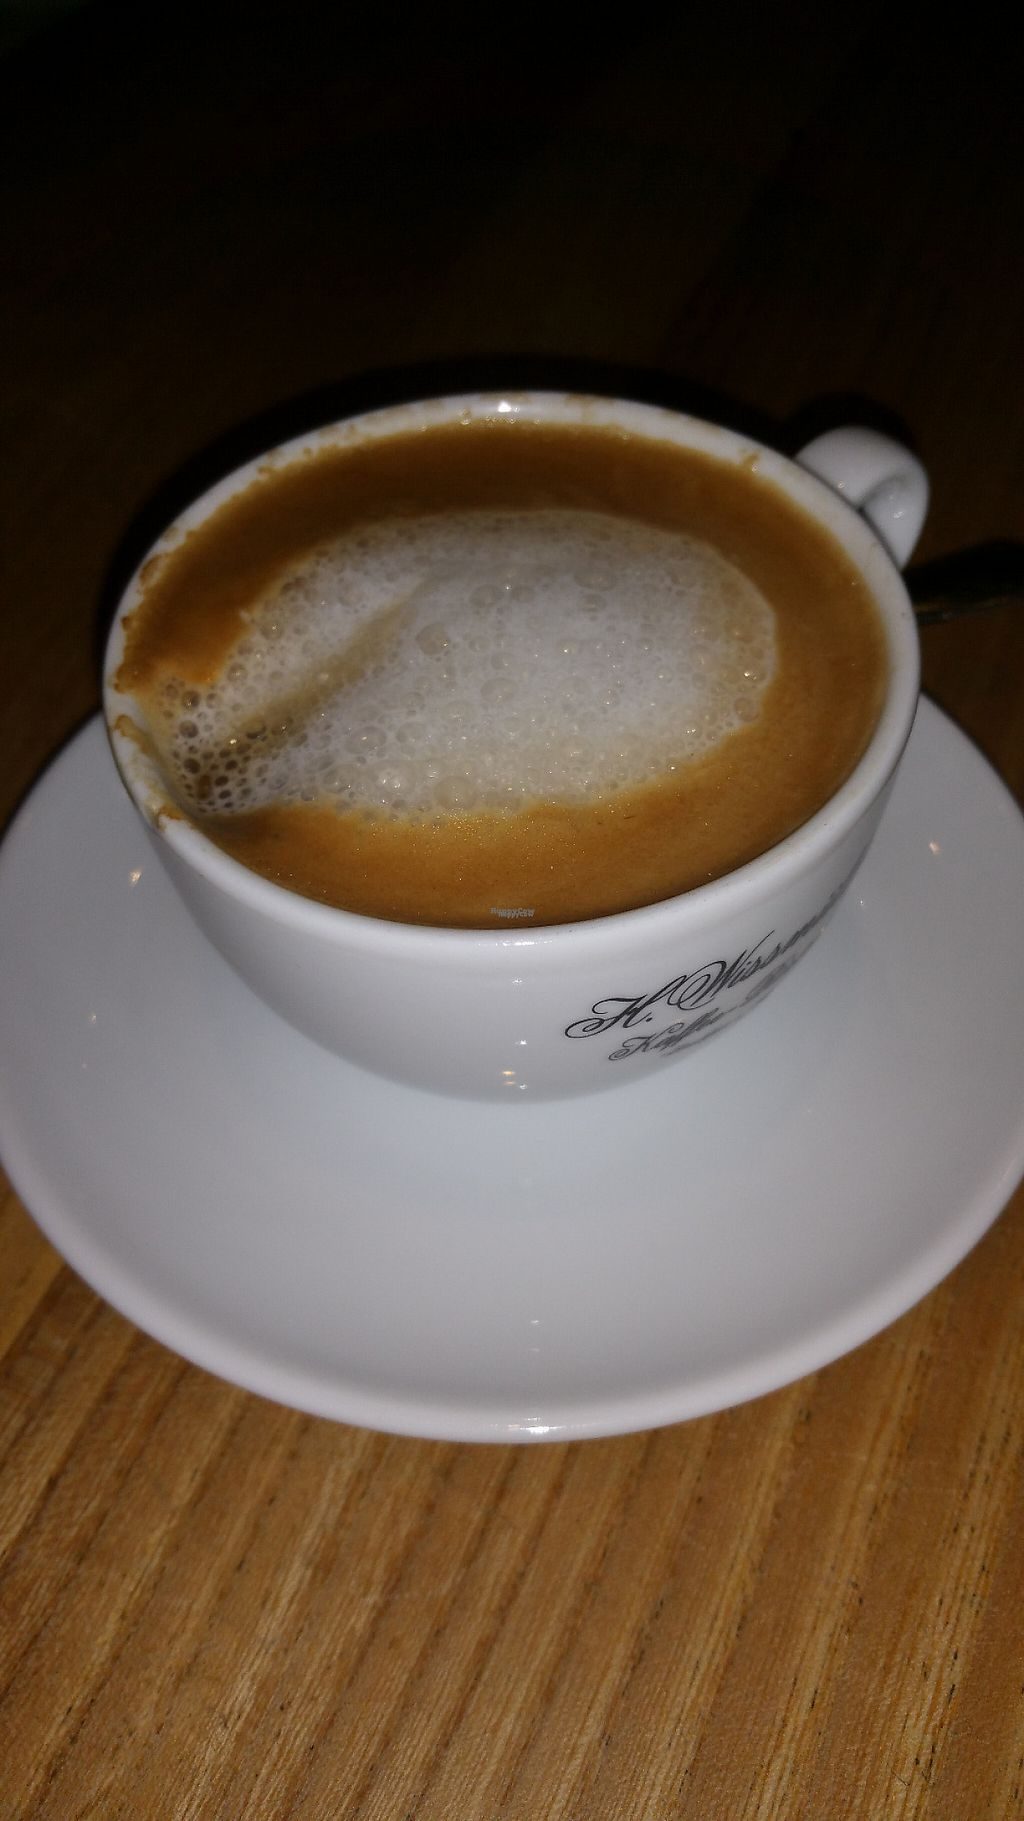 """Photo of Försters  by <a href=""""/members/profile/Mallorcatalks"""">Mallorcatalks</a> <br/>A delicious coffee with almond milk <br/> February 7, 2017  - <a href='/contact/abuse/image/86791/223842'>Report</a>"""